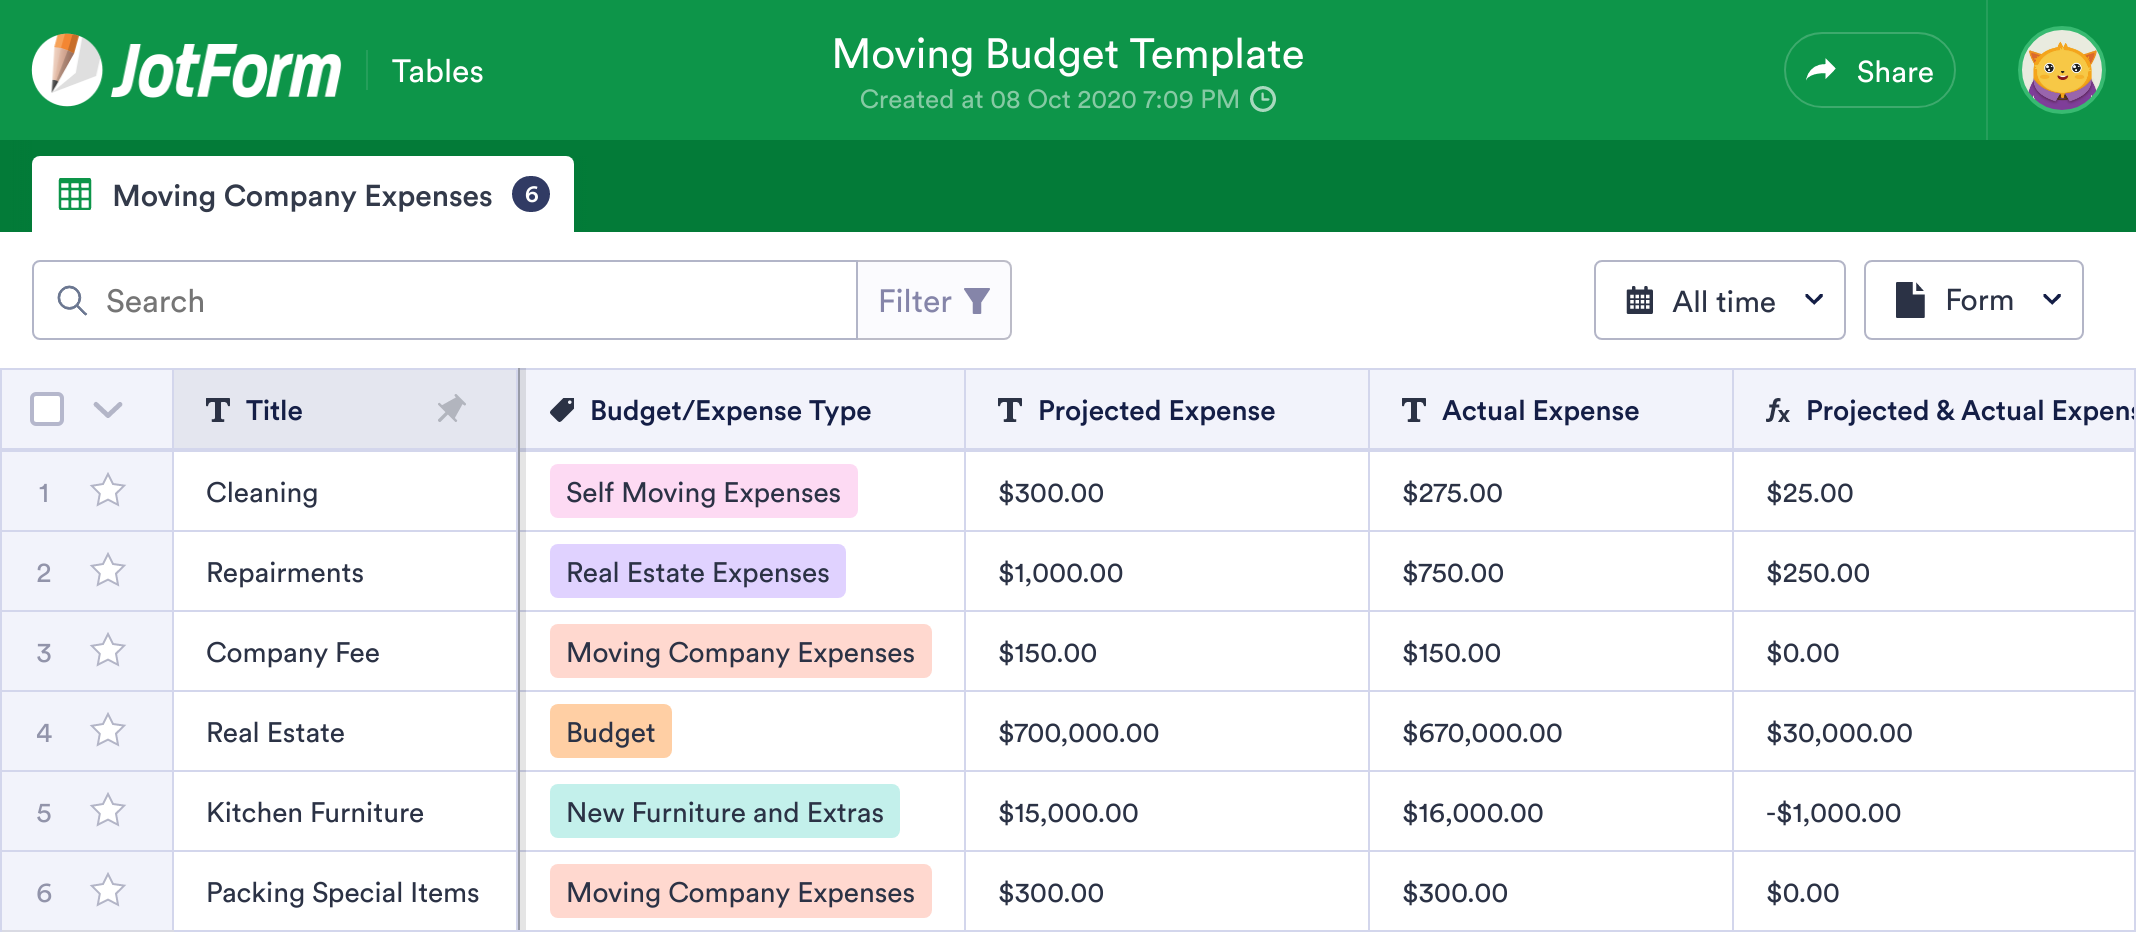 Moving Budget Template